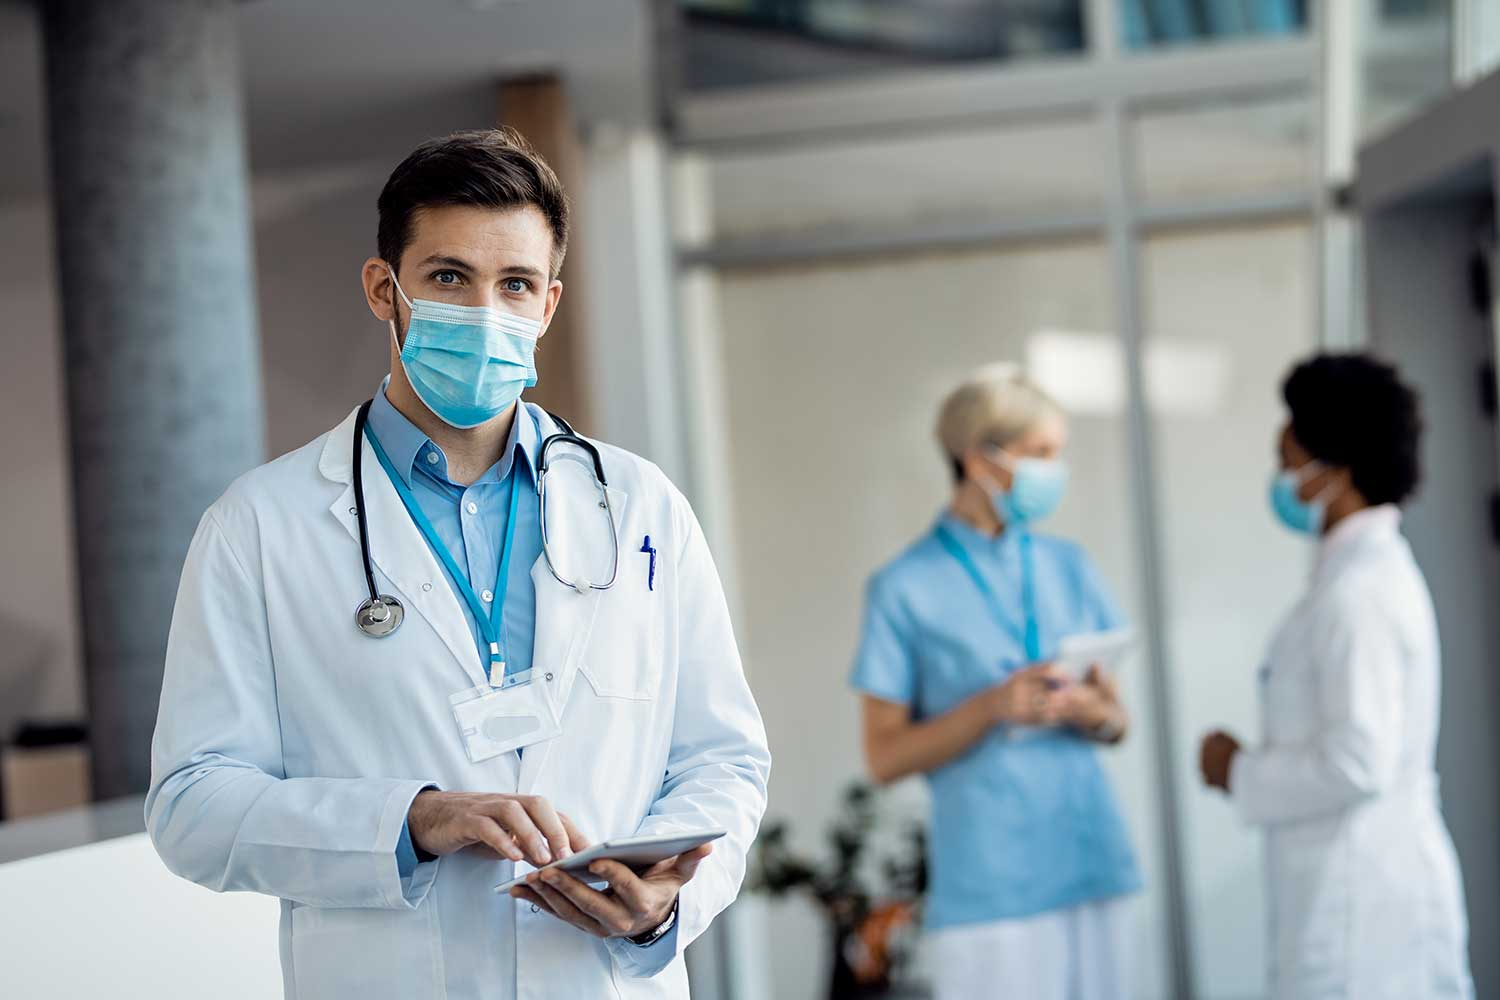 5G Network Resilience for Healthcare networks